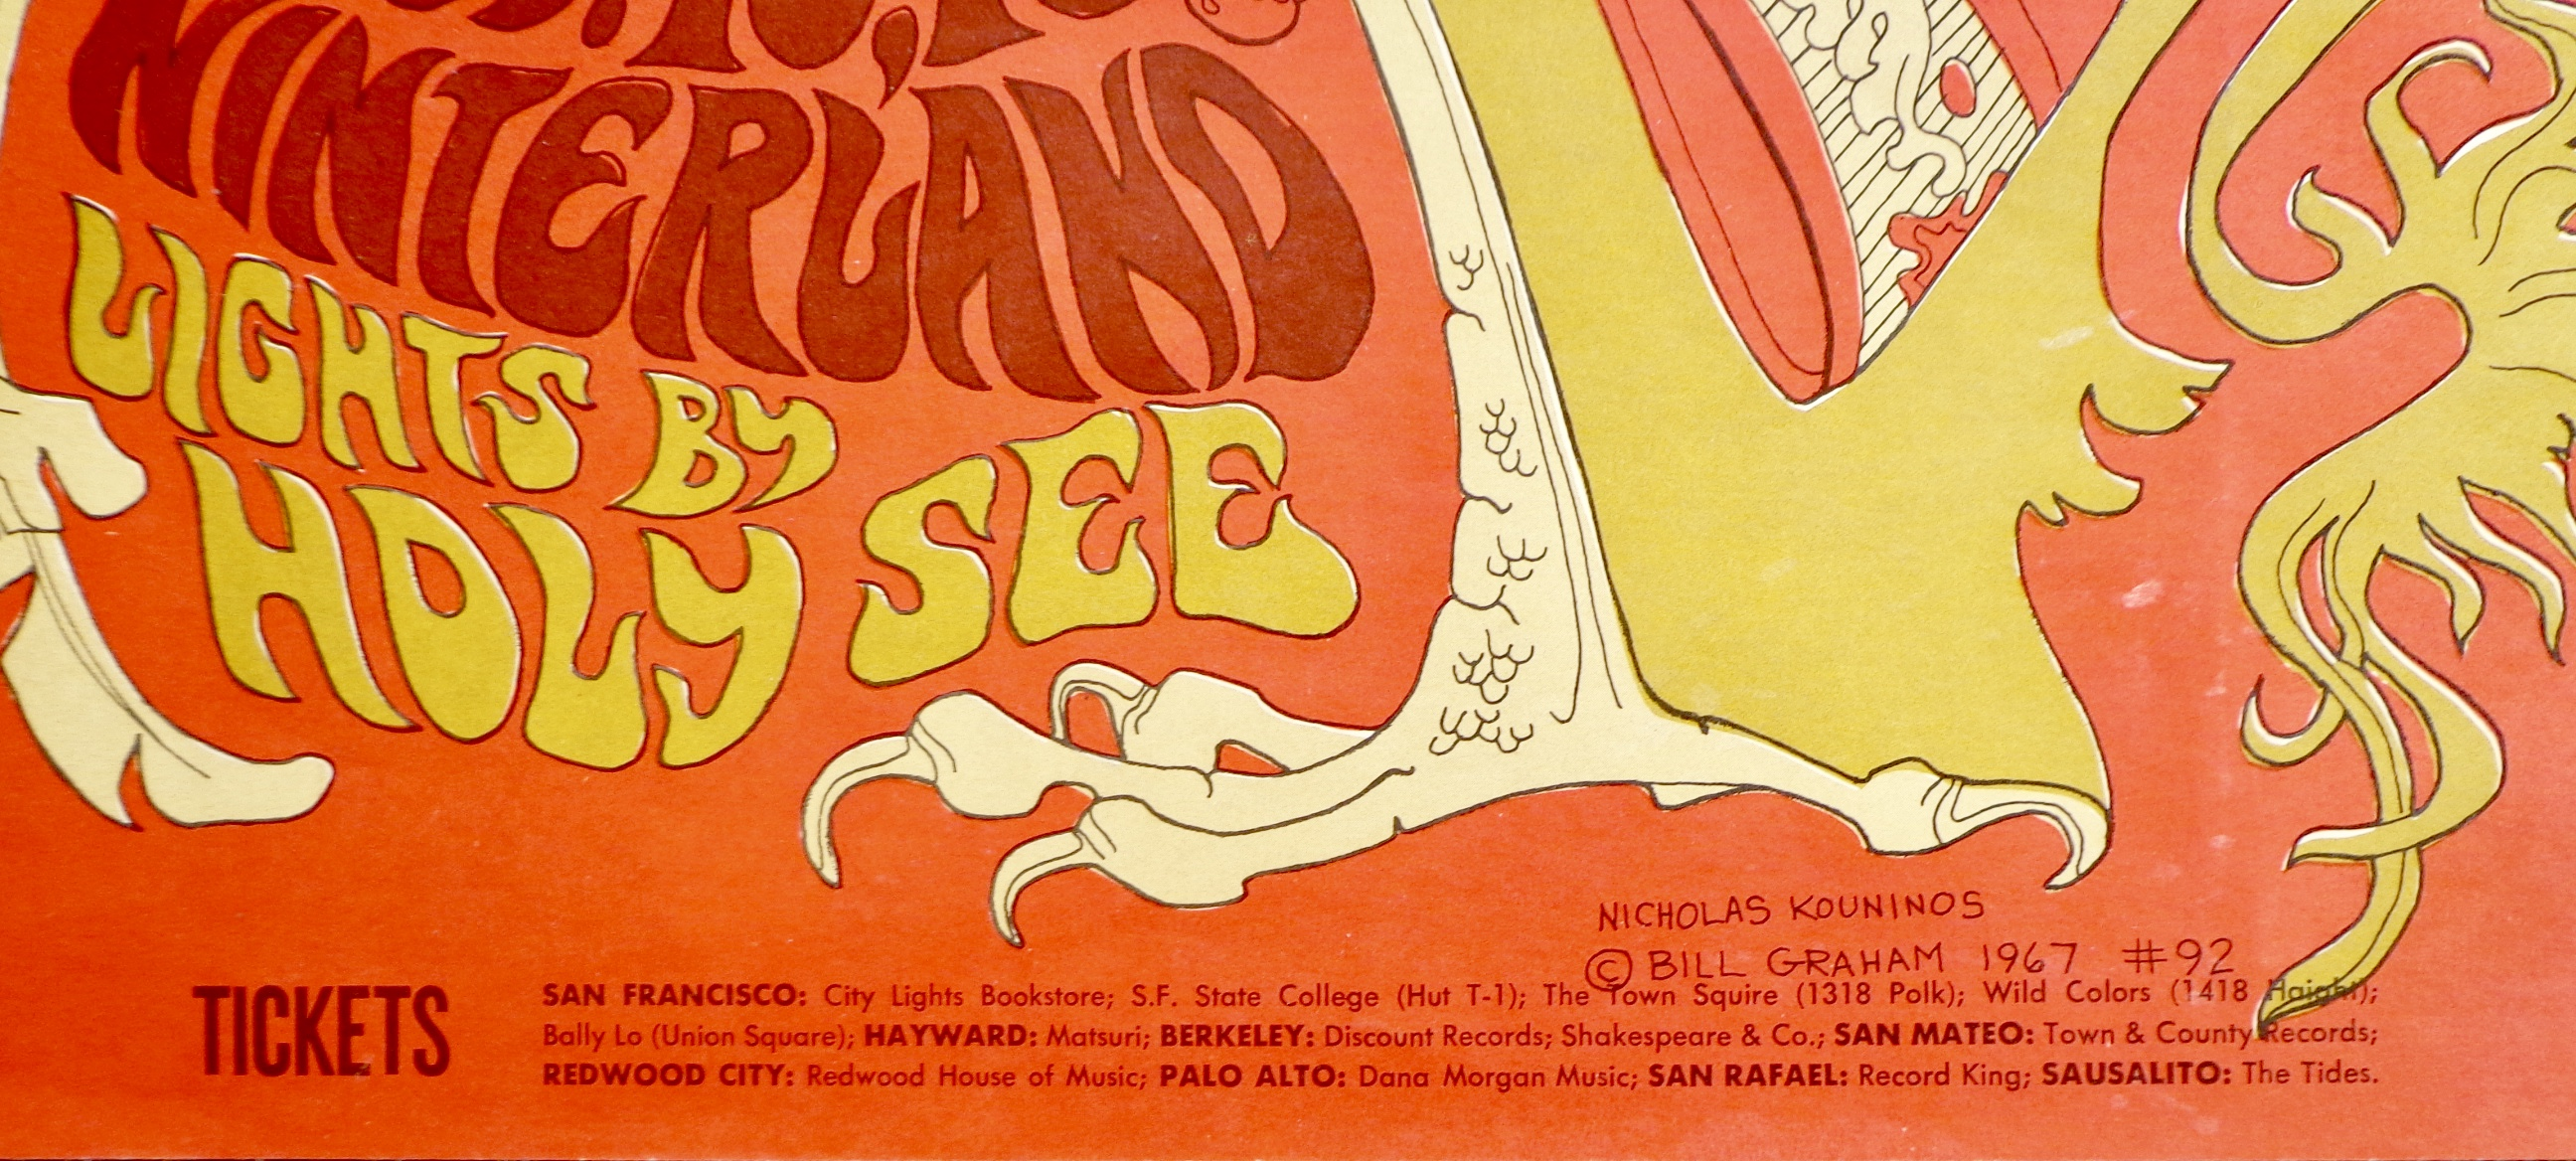 5d076f9a Pink Floyd Procol Harum HP Lovecraft concert poster, Fillmore ...